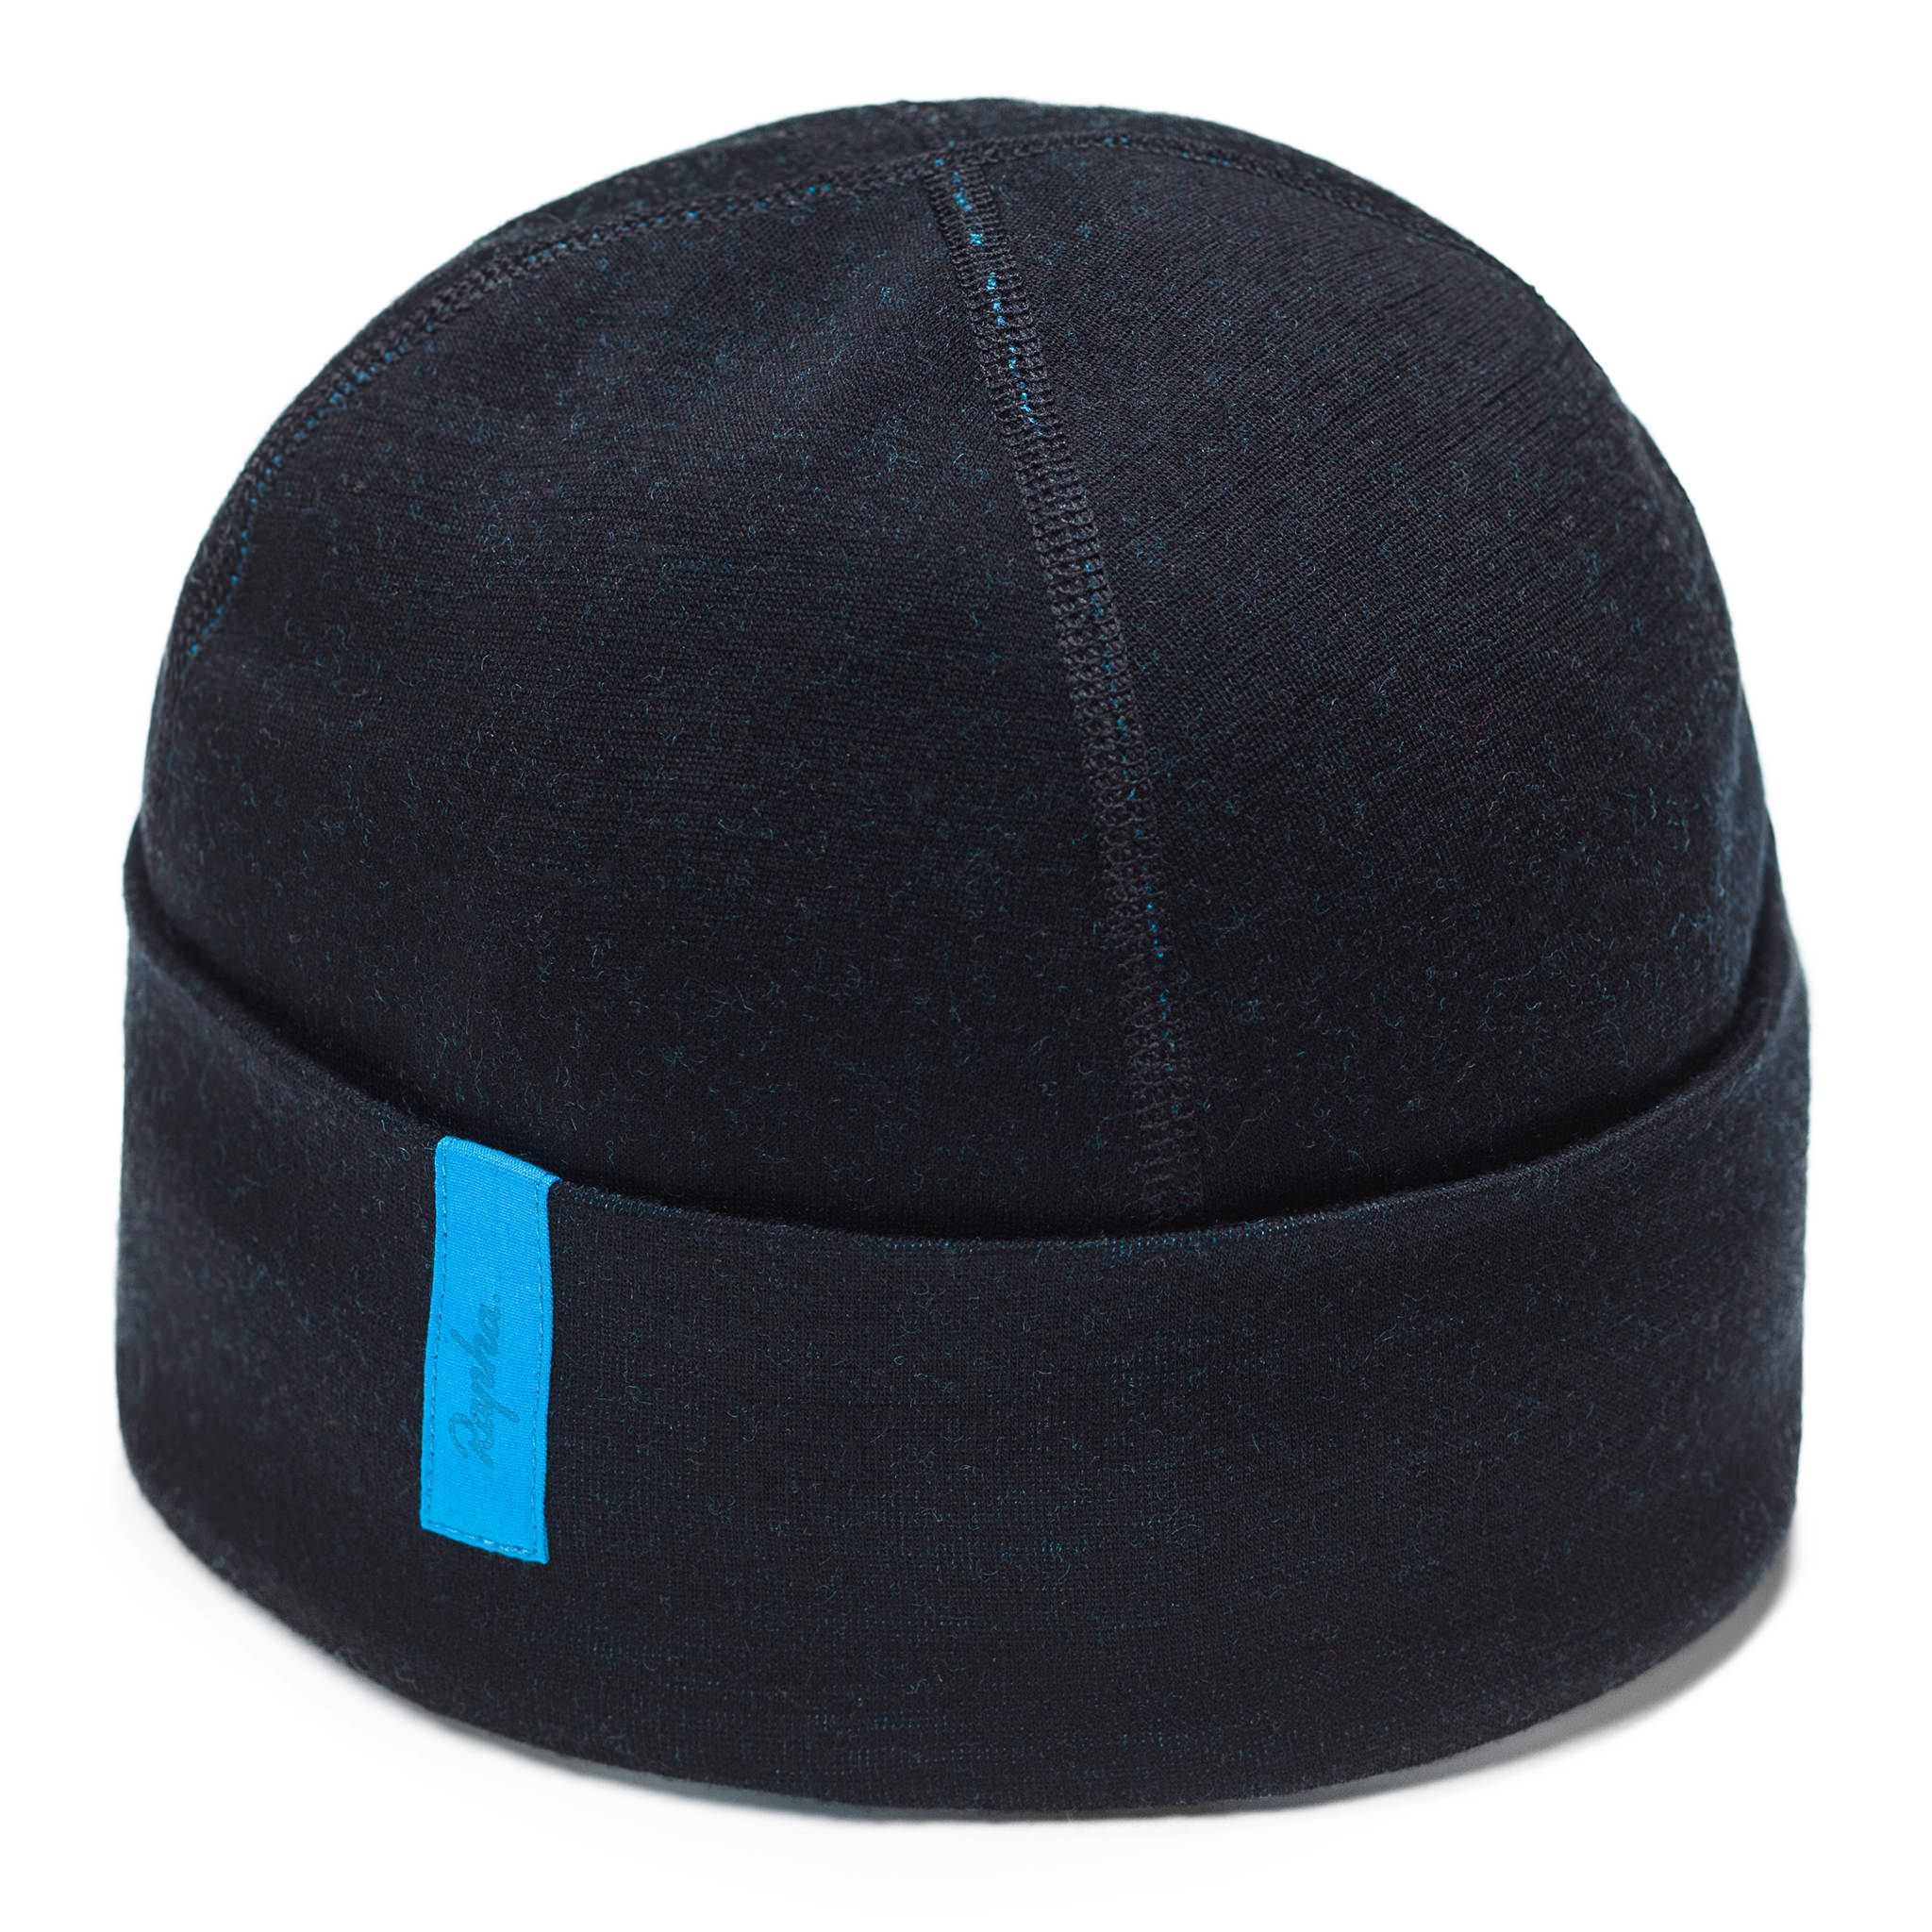 Team Sky Merino Hat